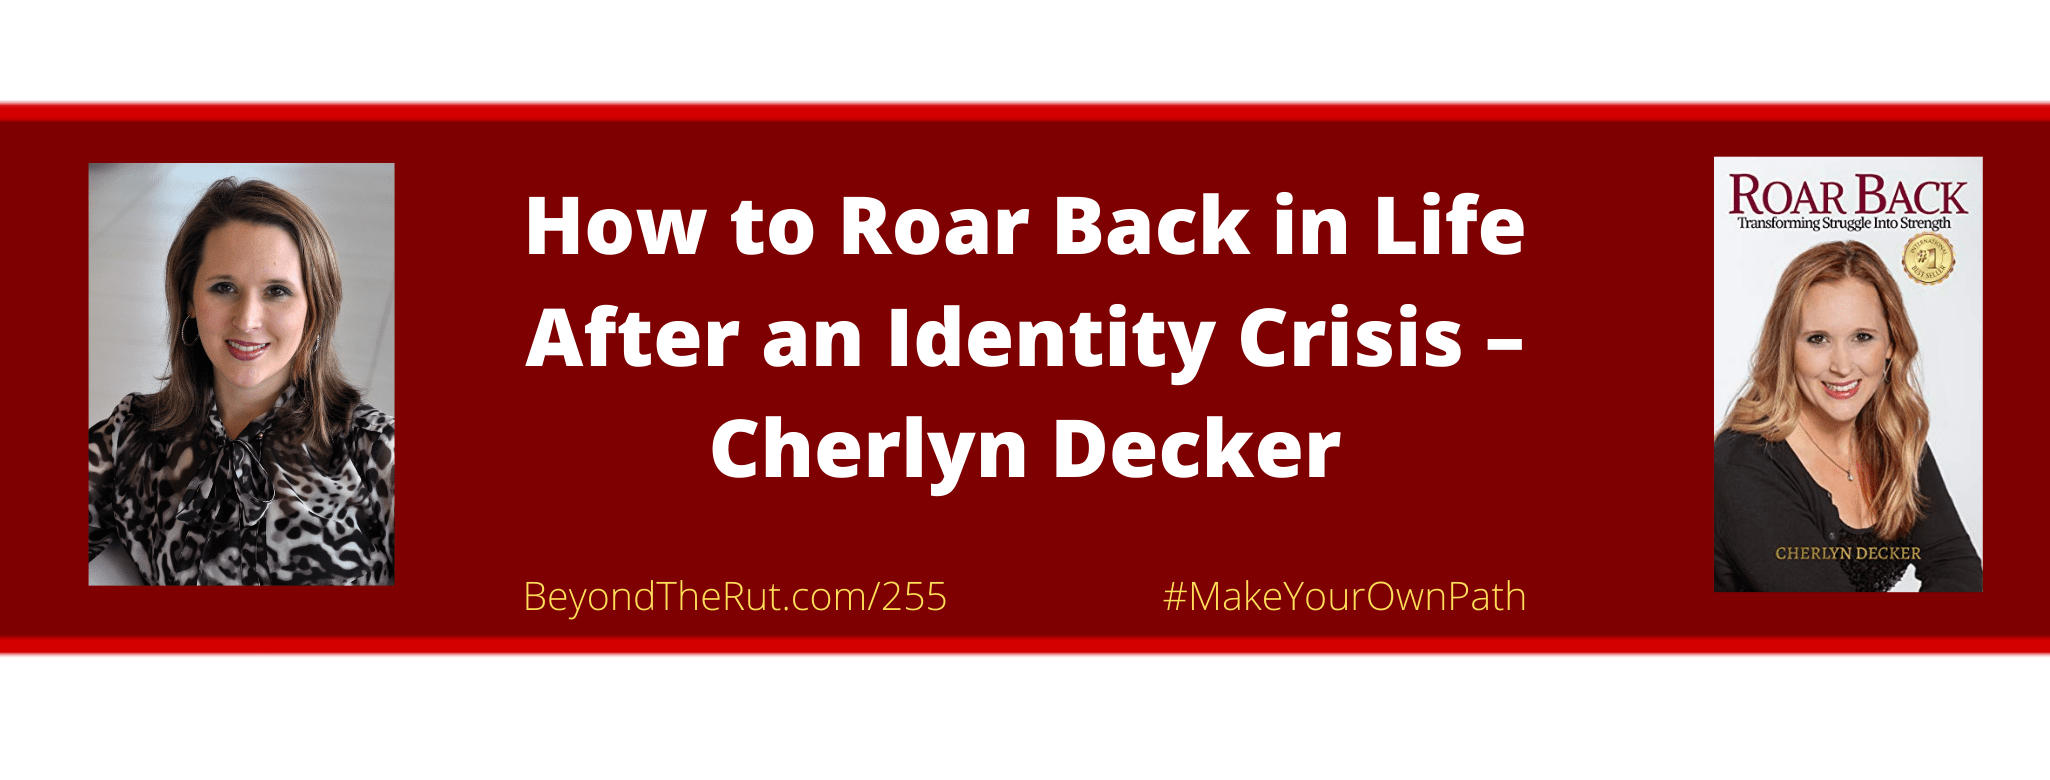 Executive leader Cherlyn Decker faced an identity crisis when the career that defined who she is was gone in an instant over the phone.